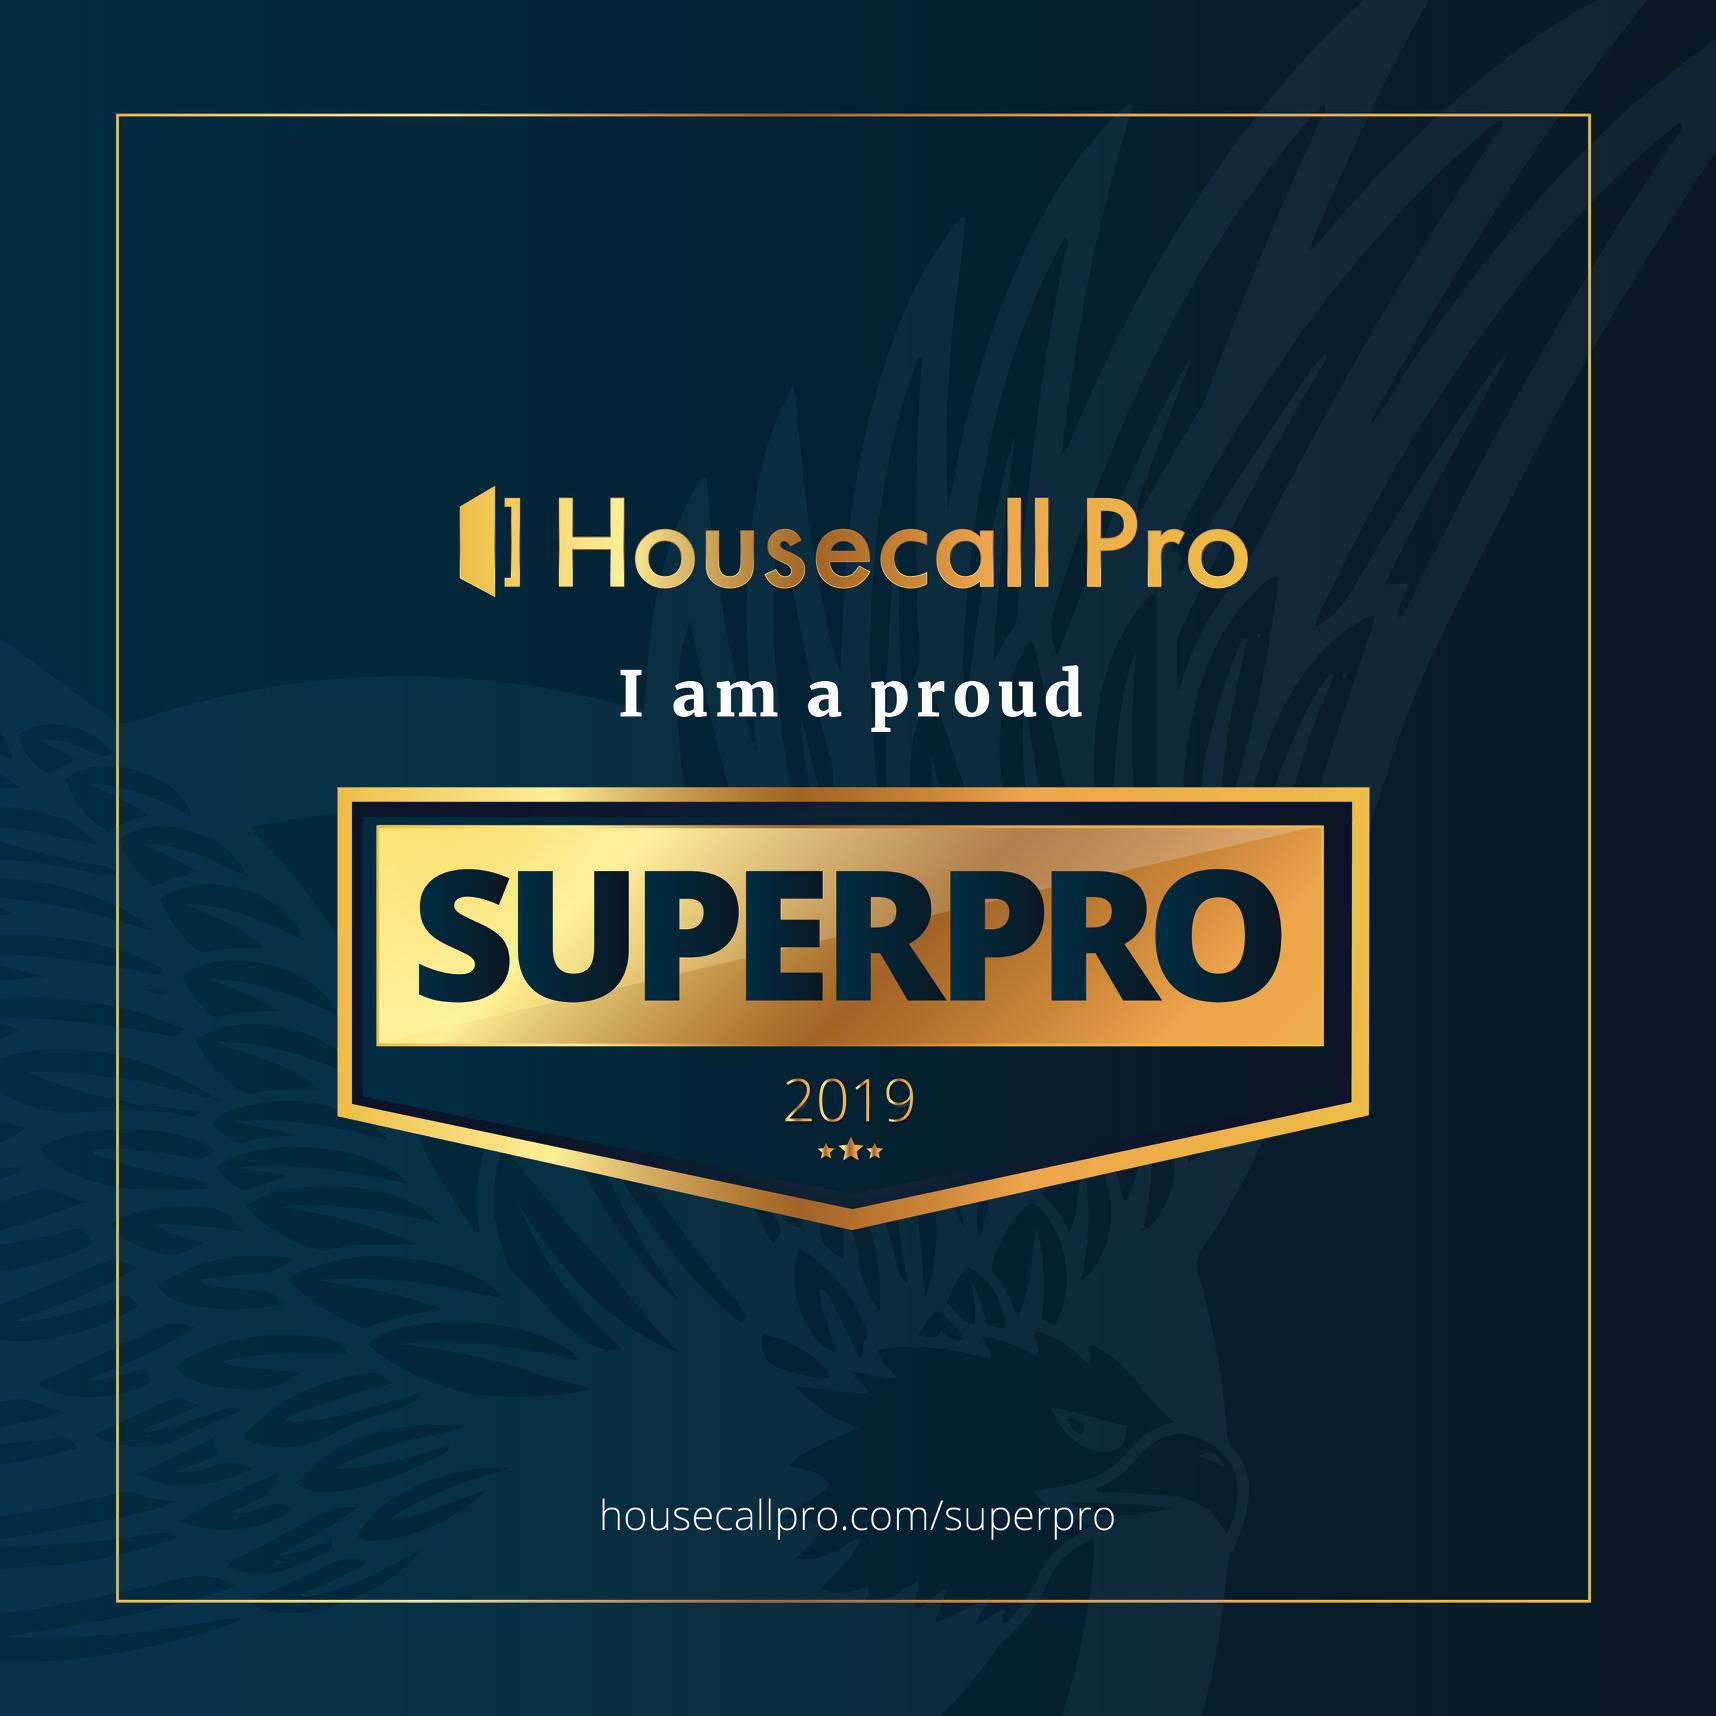 Go Squeaky Clean is a 2019 Housecall Pro Superpro